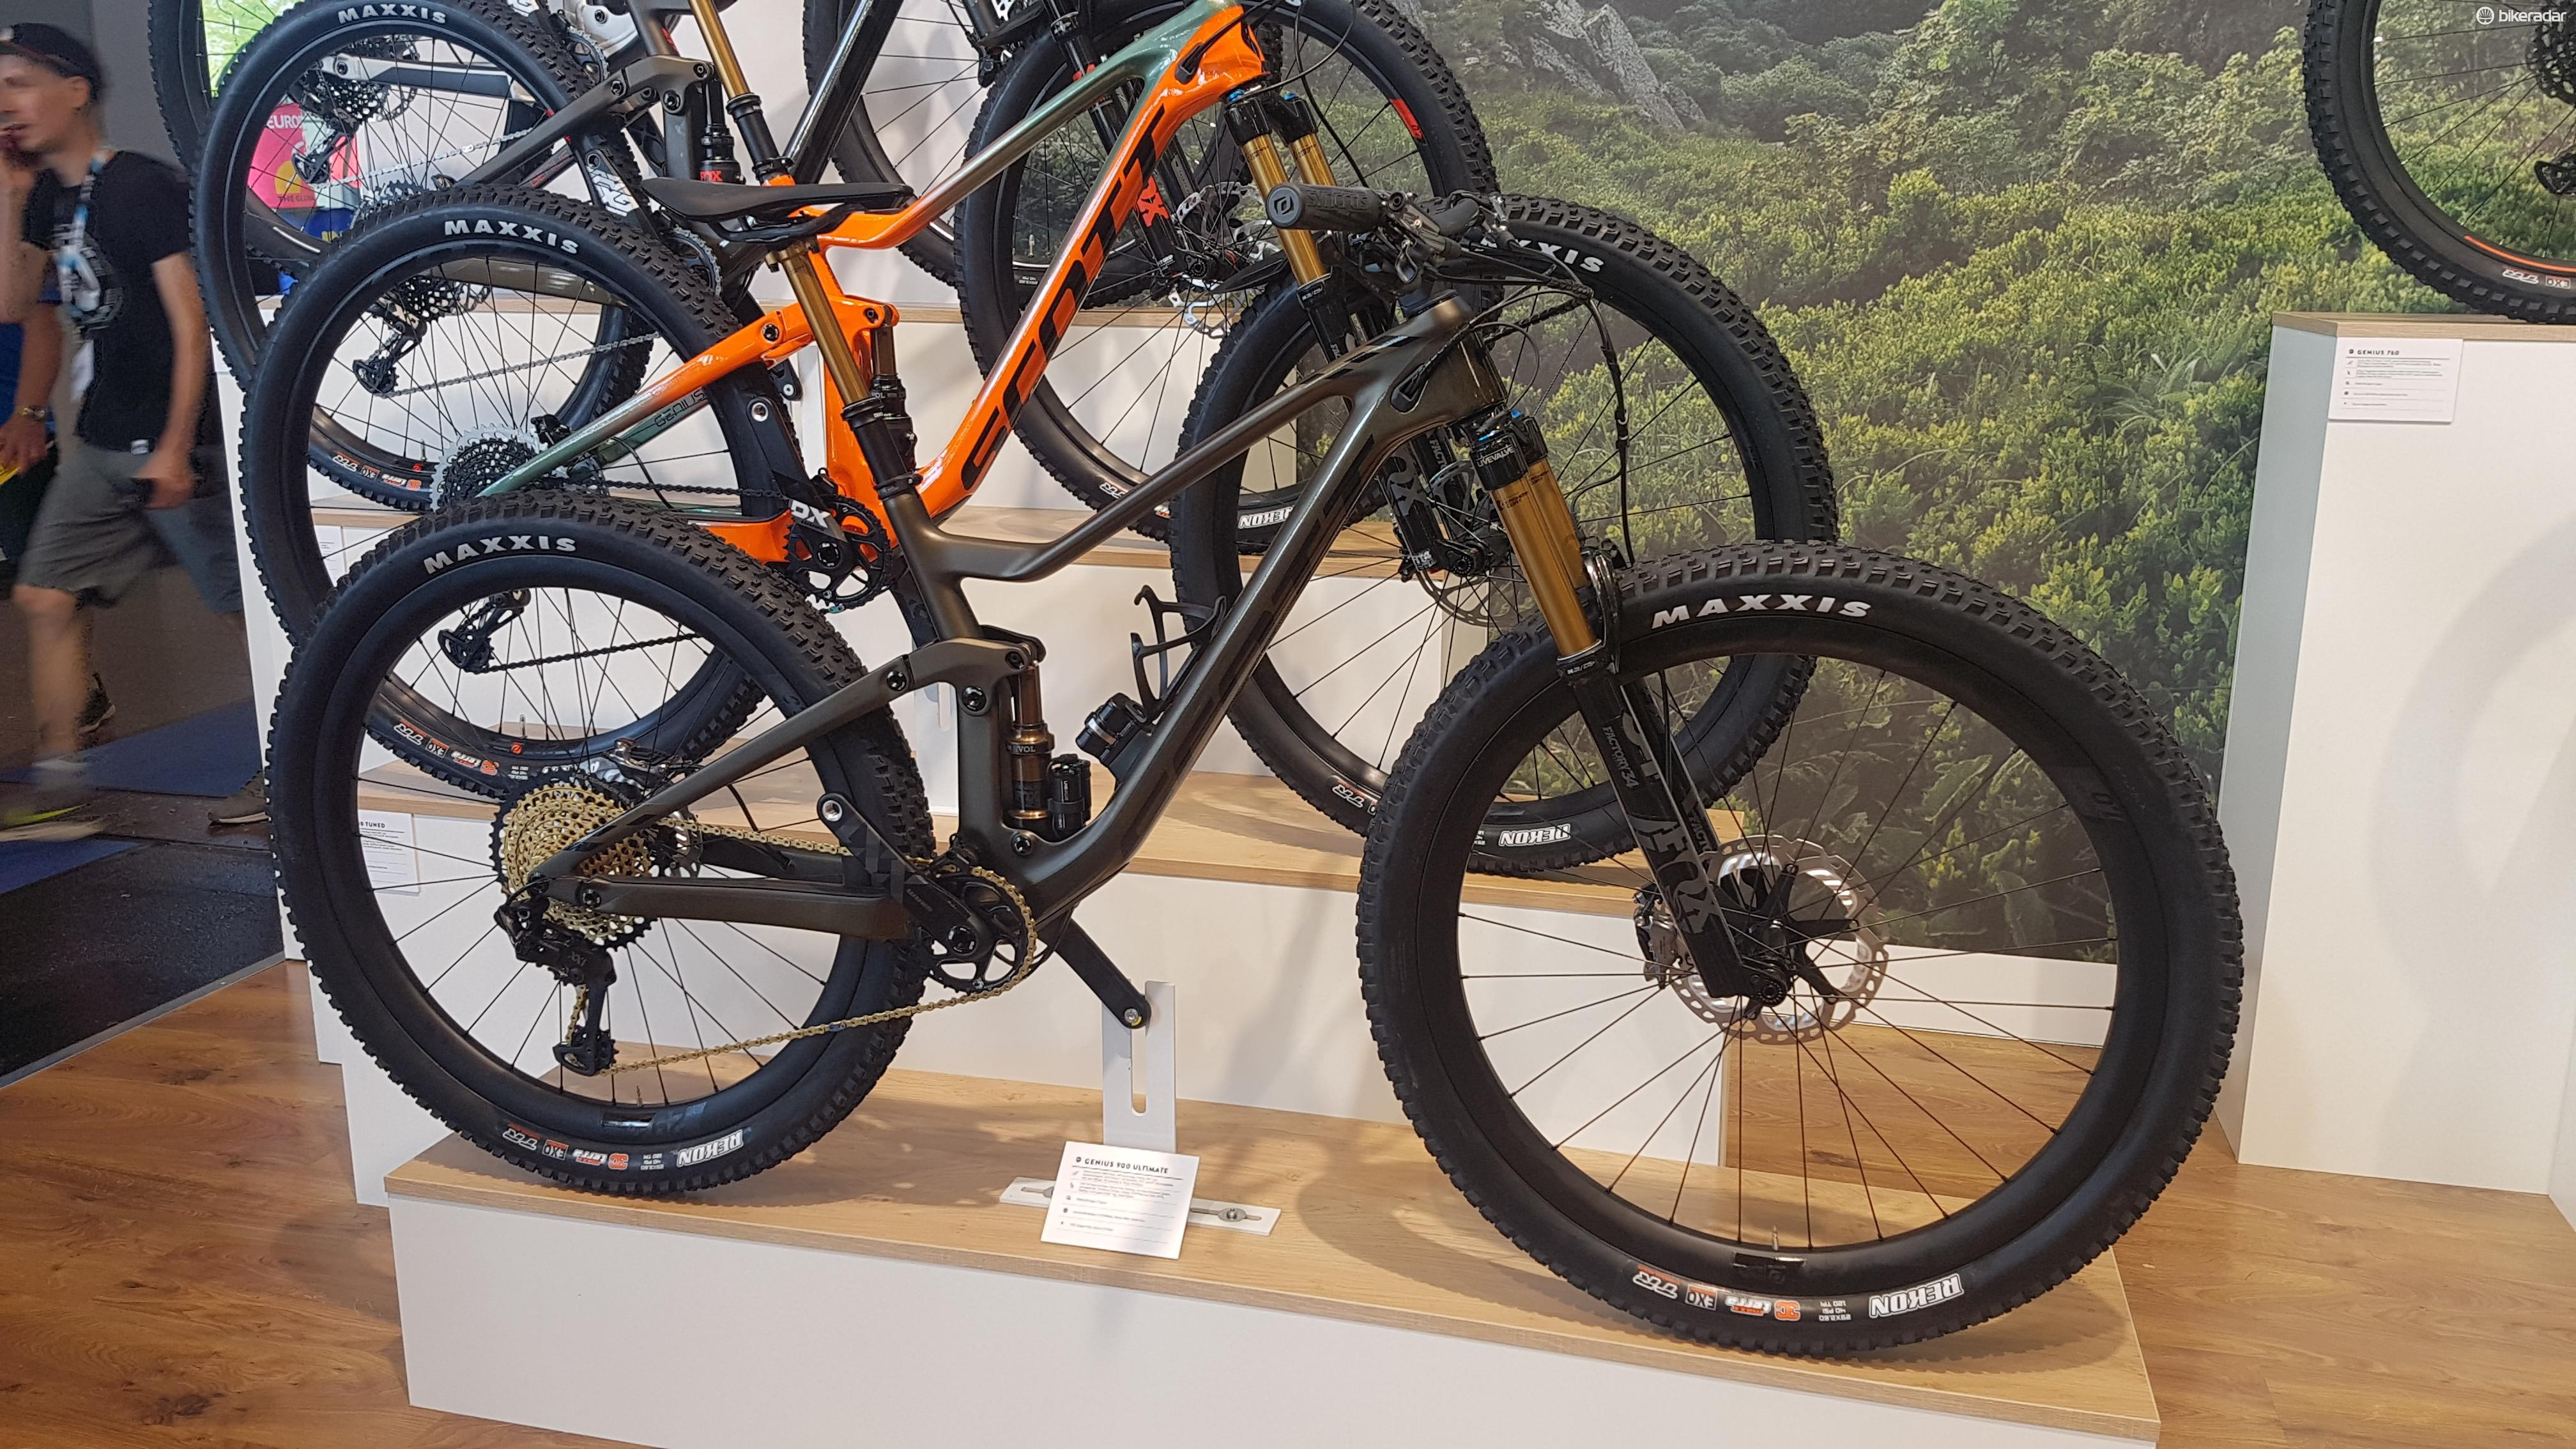 Scott had a Genius at Eurobike with the system installed